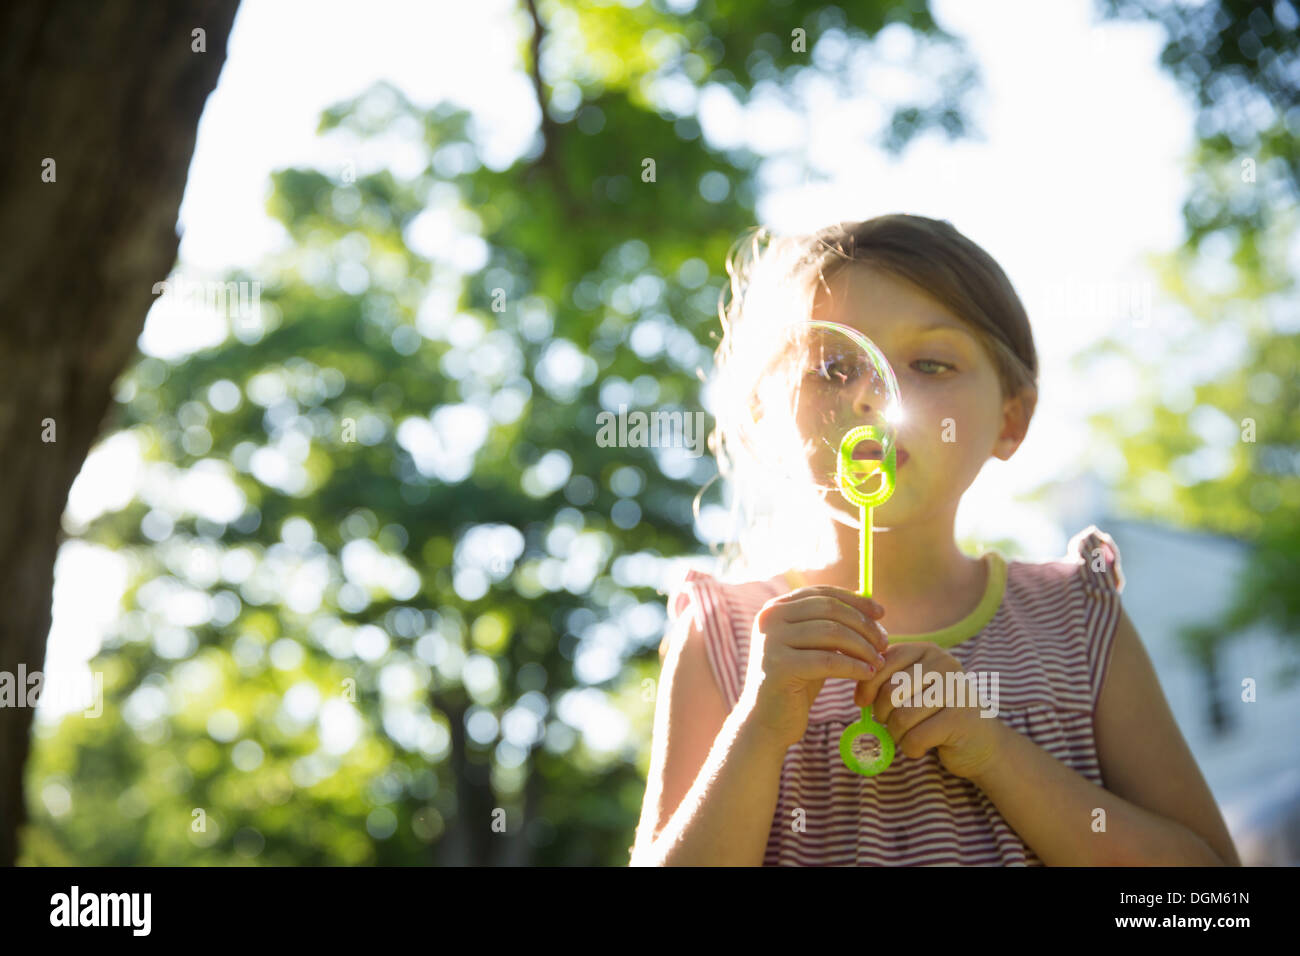 Outdoors in summer. A young girl blowing bubbles in the air under the branches of a large tree. Stock Photo